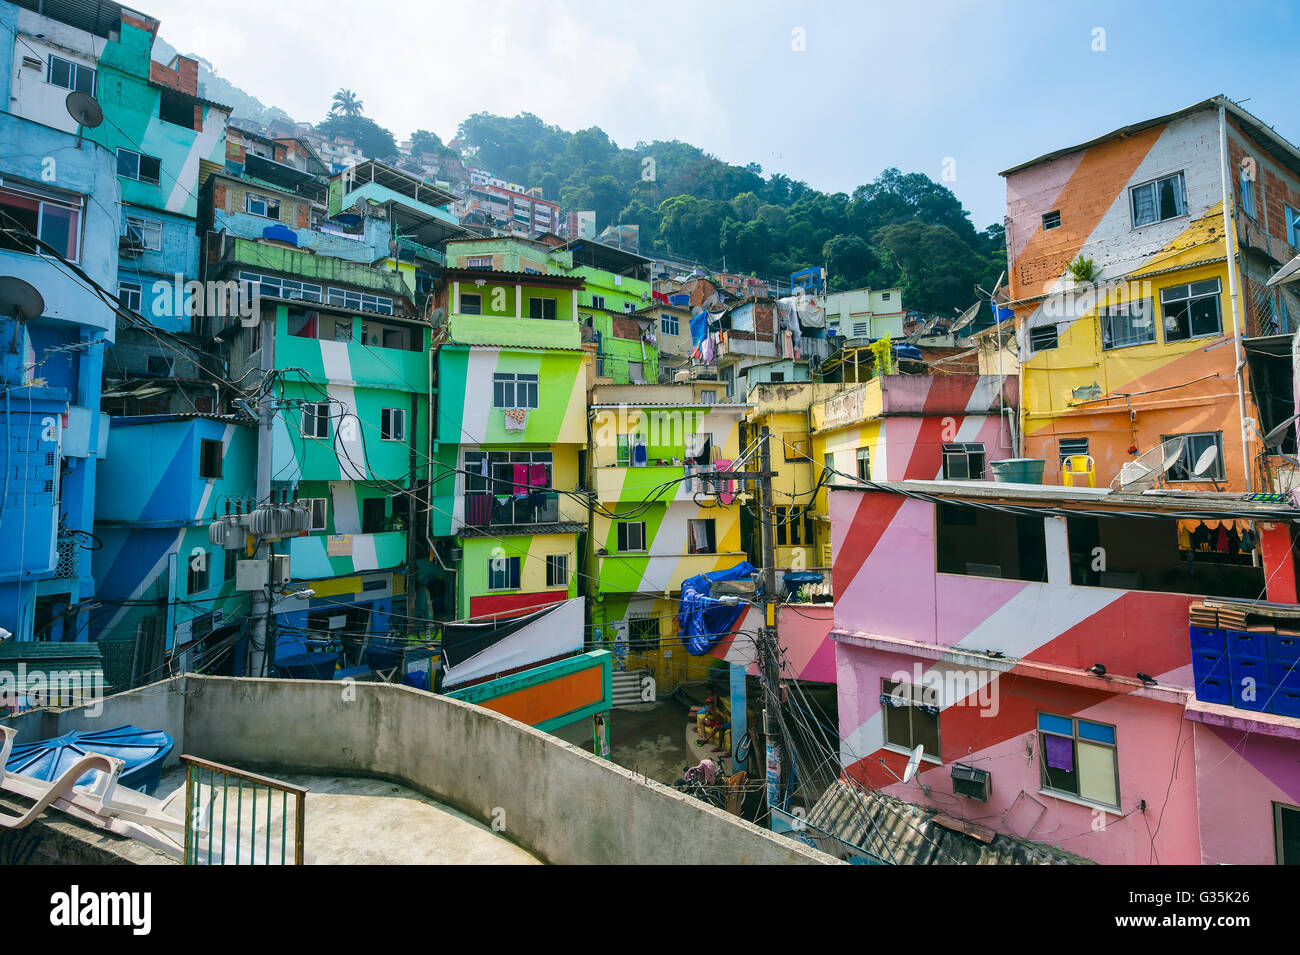 RIO DE JANEIRO - MARCH 31, 2016: Colorful buildings mark the entrance to the Santa Marta Community (favela). - Stock Image